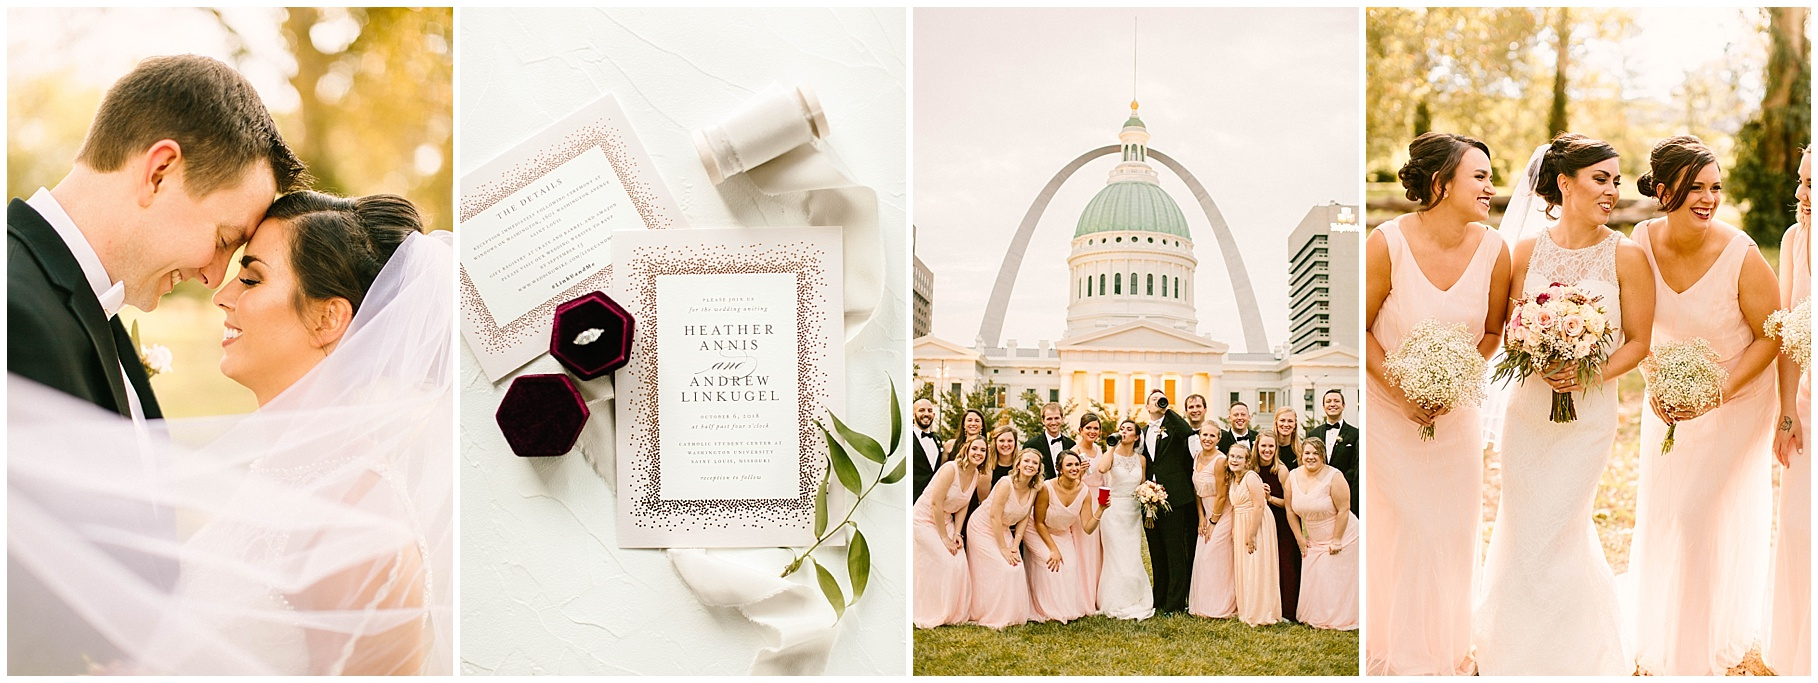 Veronica Young Photography, St. Louis Wedding photographer